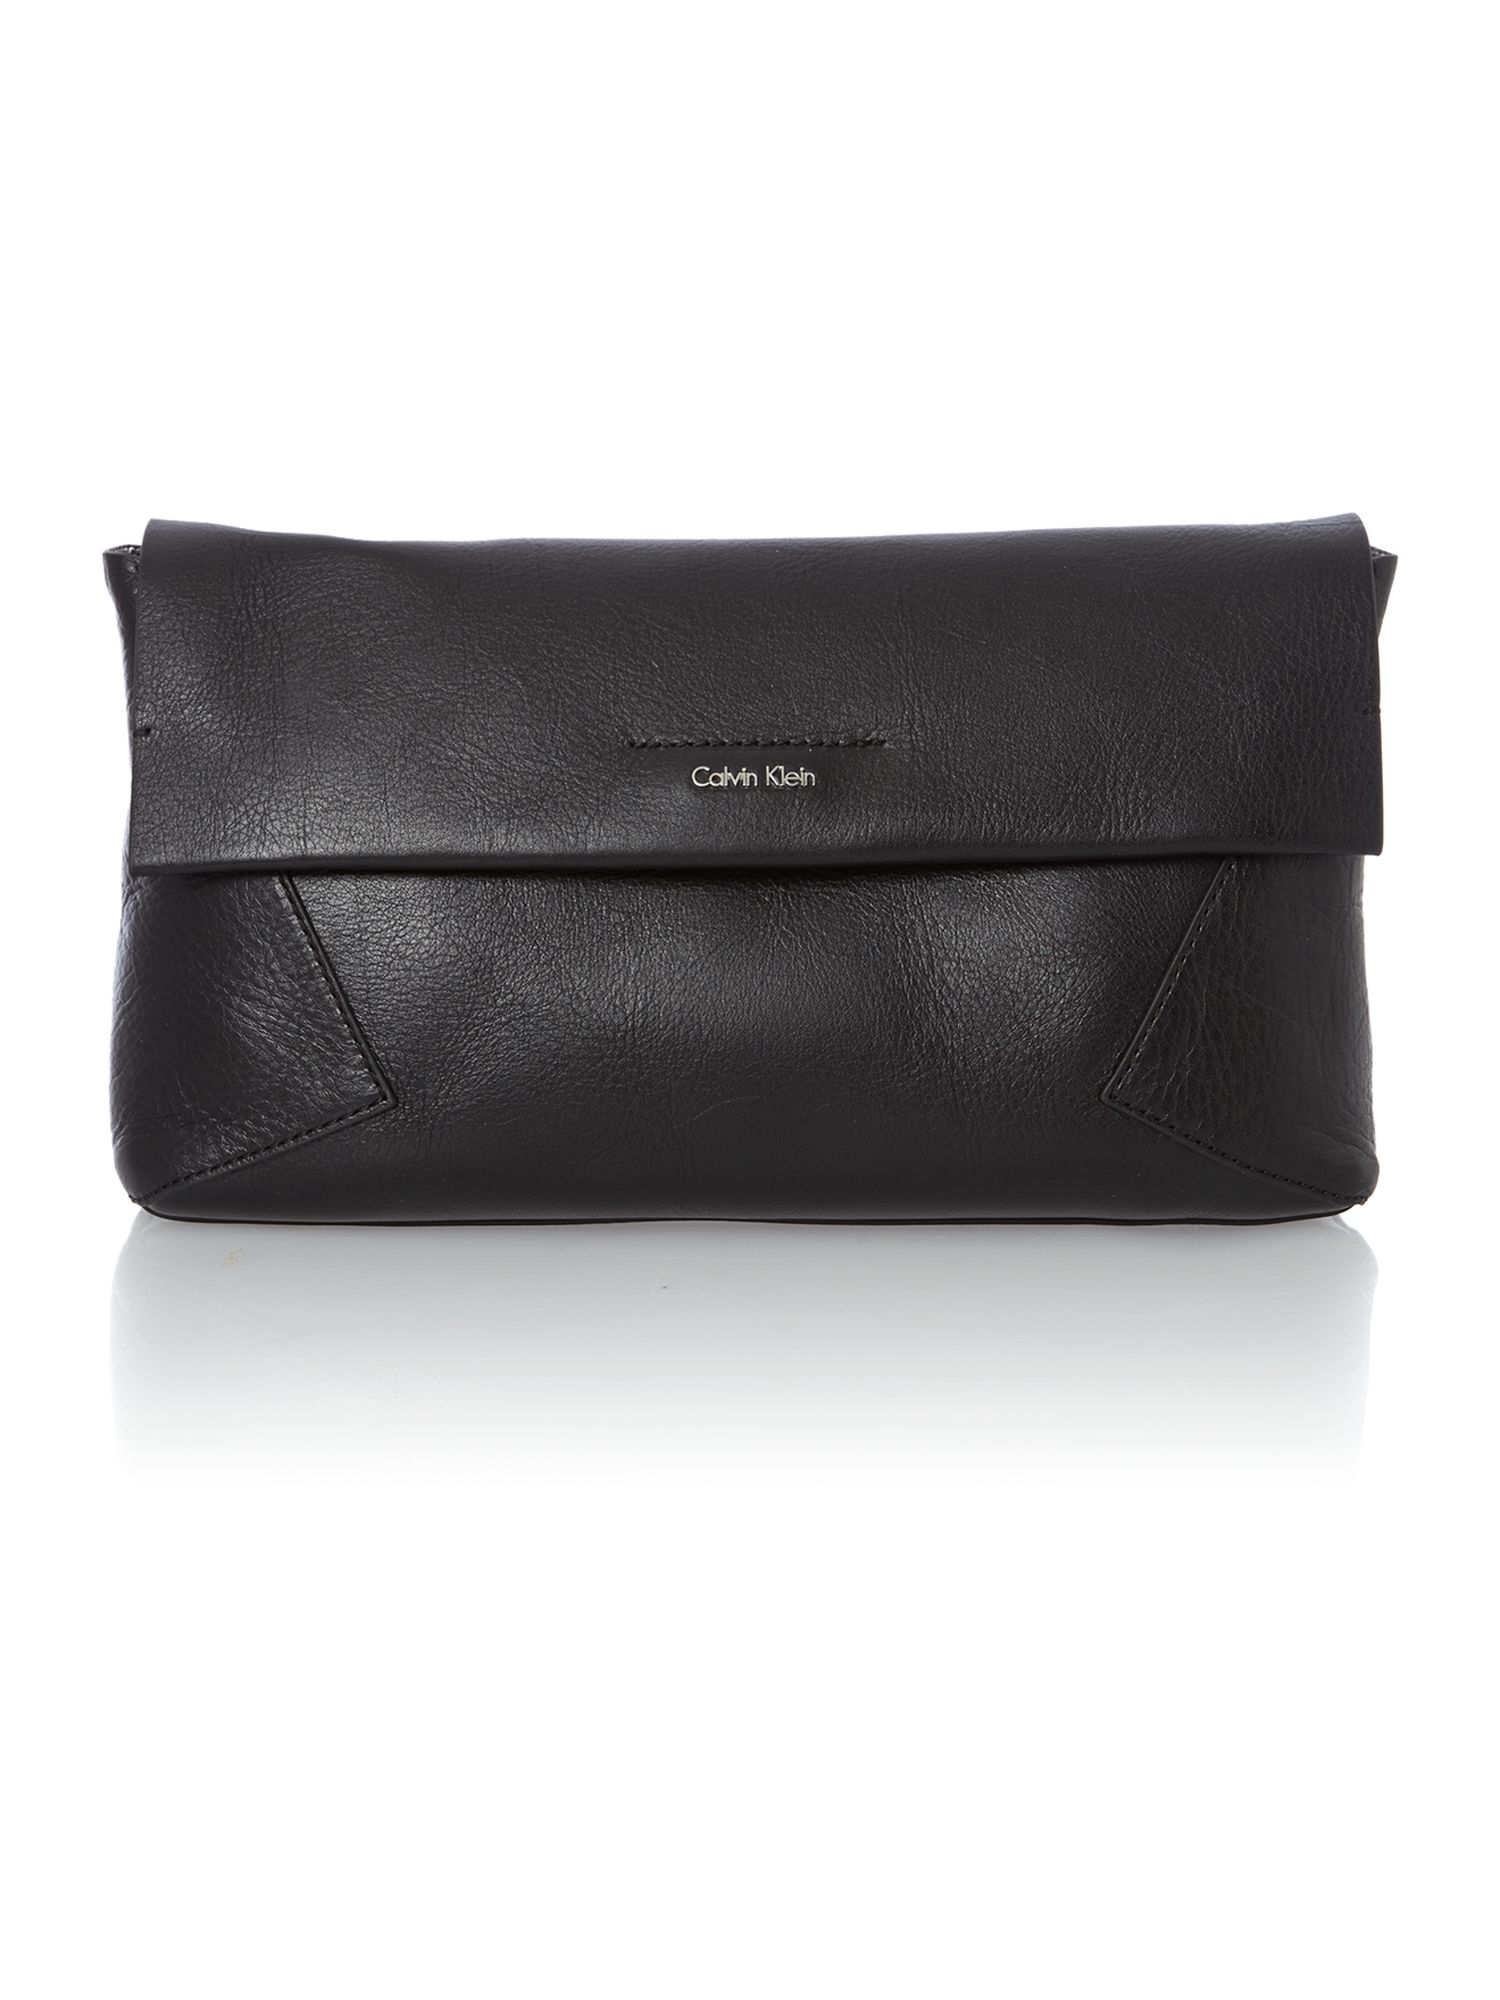 Olivia black clutch bag